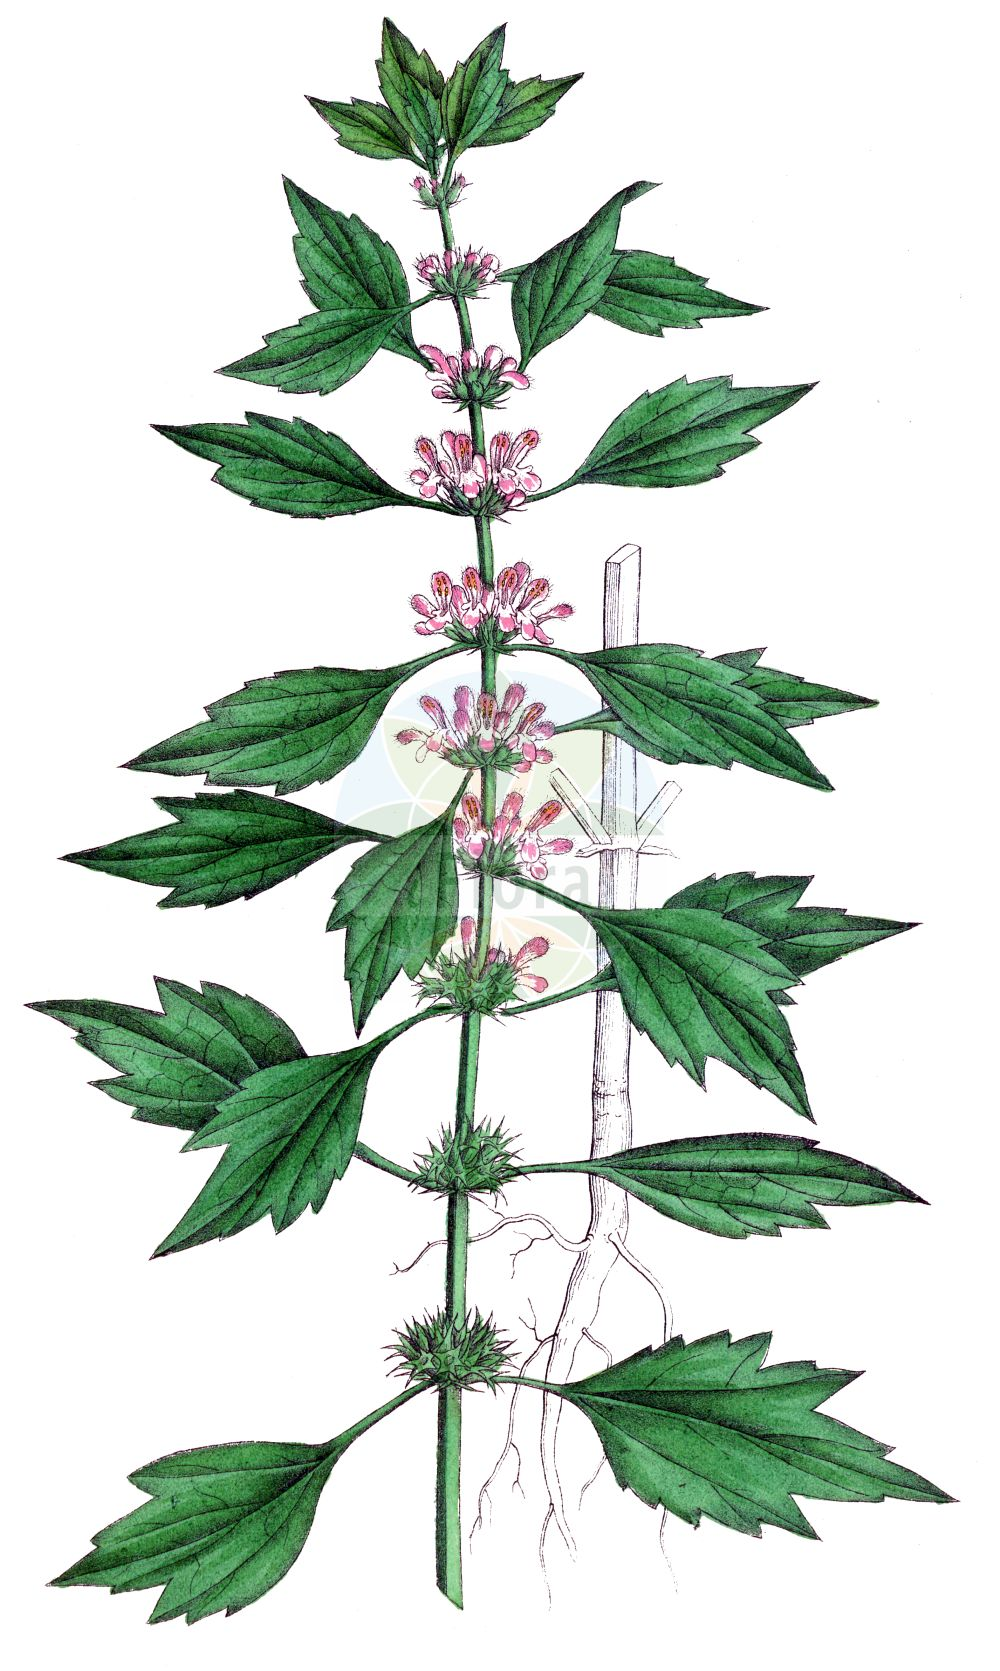 Historische Abbildung von Chaiturus marrubiastrum (Filziges Herzgespann - False Motherwort). Das Bild zeigt Blatt, Bluete, Frucht und Same. ---- Historical Drawing of Chaiturus marrubiastrum (Filziges Herzgespann - False Motherwort).The image is showing leaf, flower, fruit and seed.(Chaiturus marrubiastrum,Filziges Herzgespann,False Motherwort,Cardiaca marrubiastrum,Chaiturus leonuroides,Chaiturus marrubiastrum,Chaiturus marrubifolius,Leonurus marrubiastrum,Leonurus marrubifolius,Leonurus parviflorus,Filziges Herzgespann,Andorn-Loewenschwanz,Falscher Andorn,Katzenschwanz,False Motherwort,Lion's Tail,Horehound Motherwort,Chaiturus,Lamiaceae,Lippenbluetengewaechse,Lippenbluetler,Nettle family,Blatt,Bluete,Frucht,Same,leaf,flower,fruit,seed,Dietrich (1833-1844))